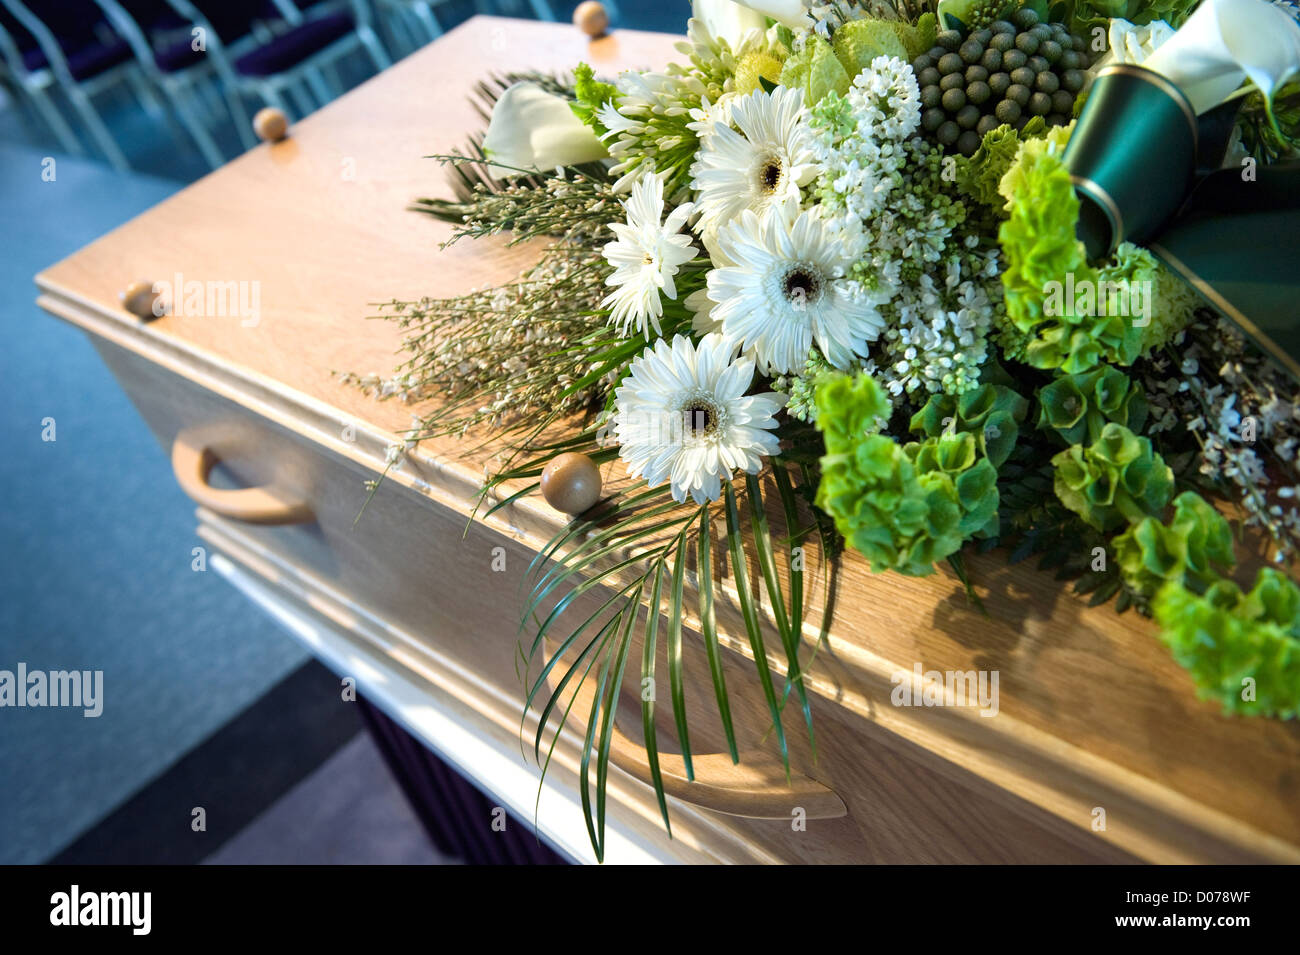 Funeral stock photos funeral stock images alamy a coffin with a flower arrangement at a mortuary stock image izmirmasajfo Gallery